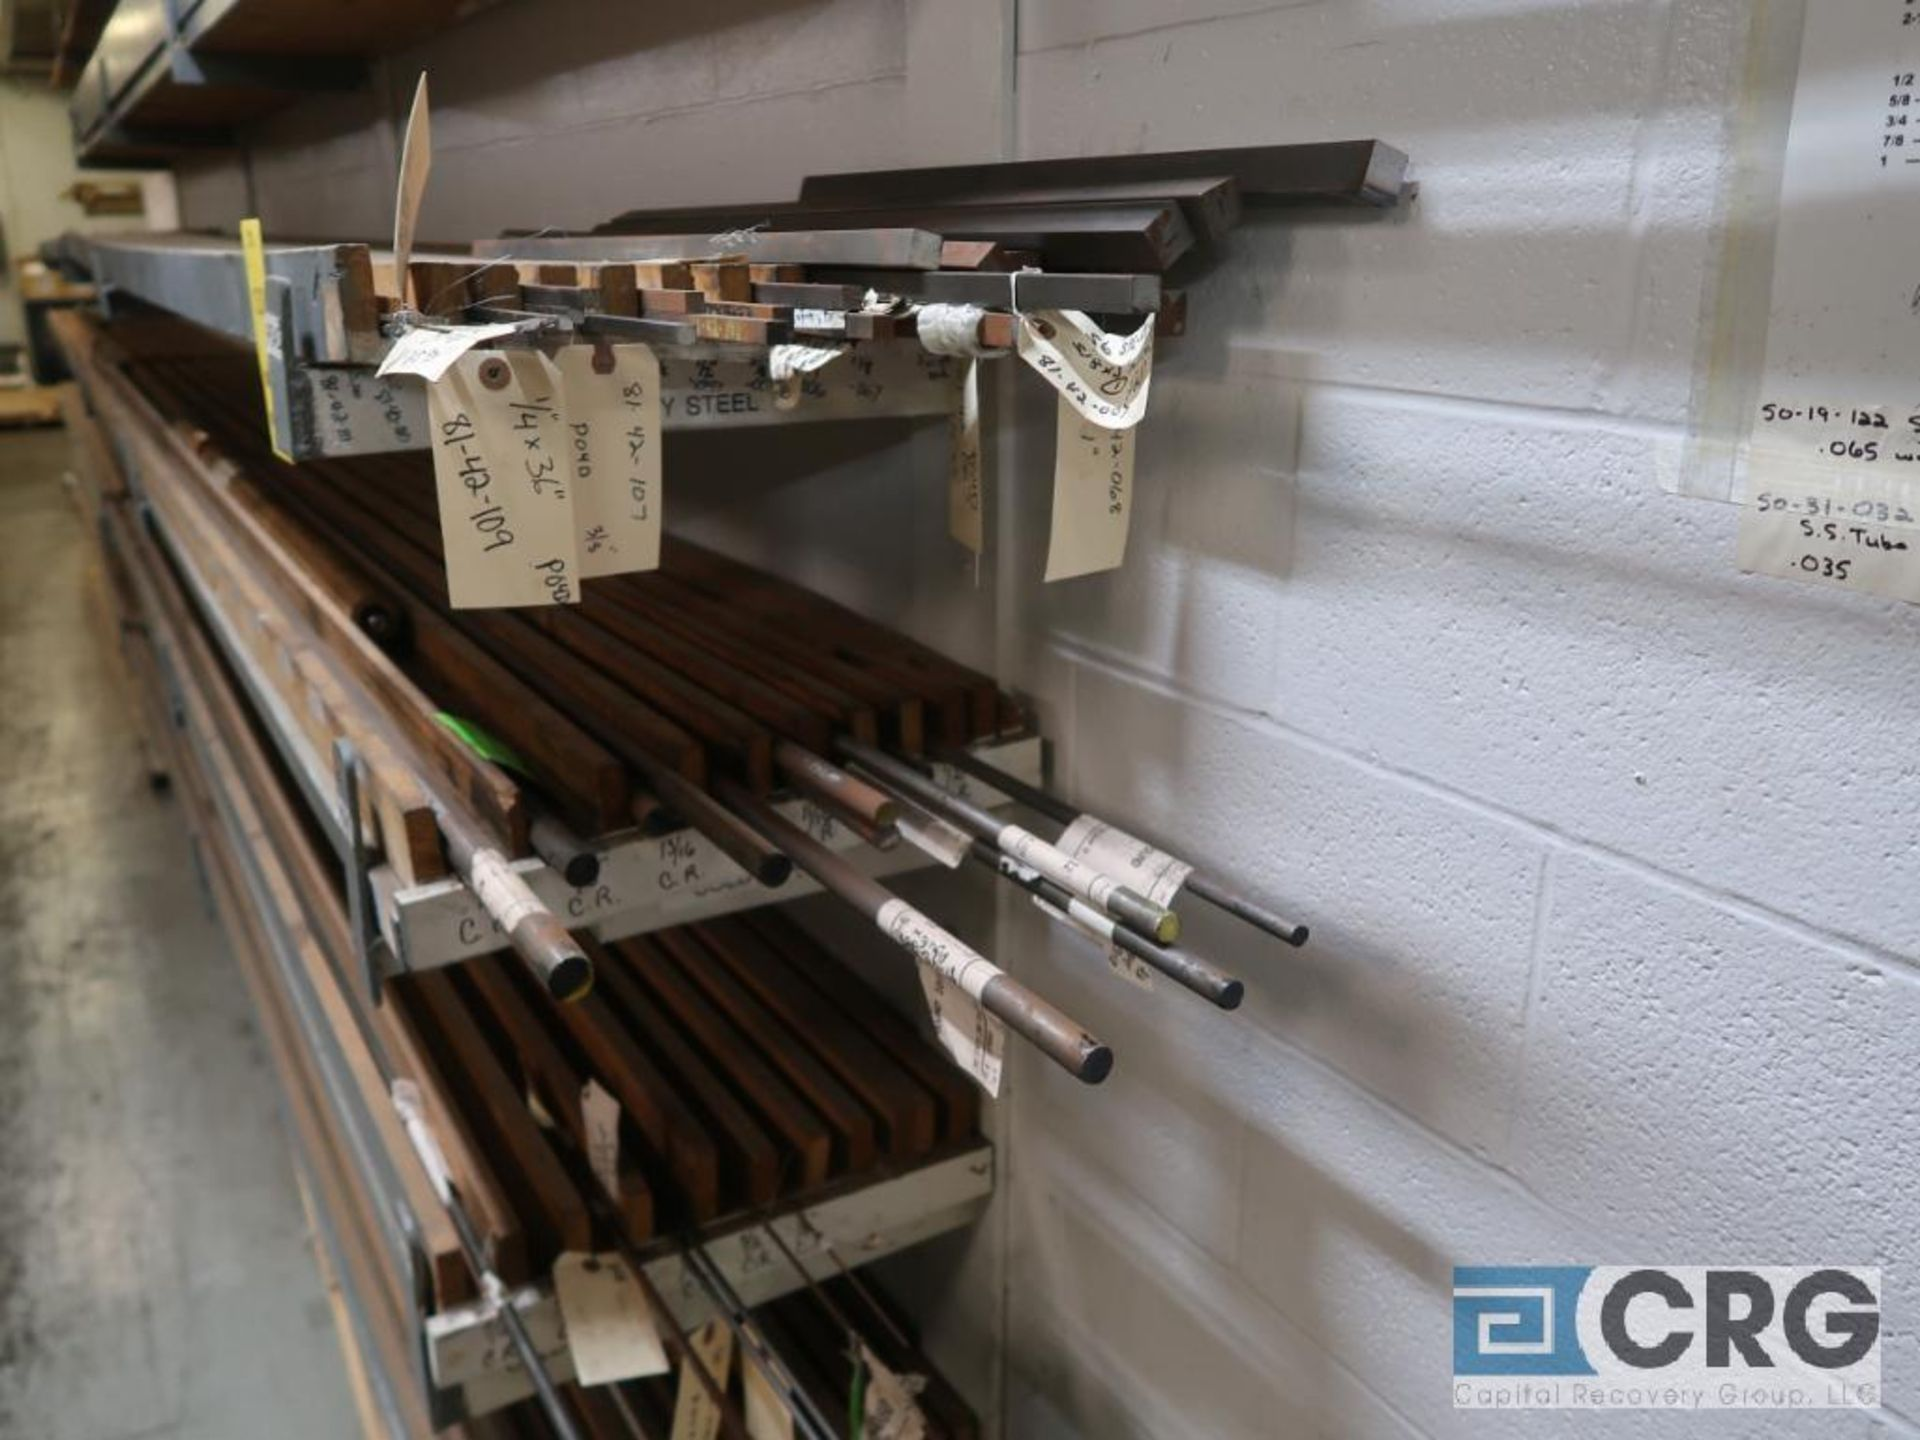 Wall mount rack with cold roll shaft, stainless tubing, key steel, and conduit pipe (Store - Image 4 of 7